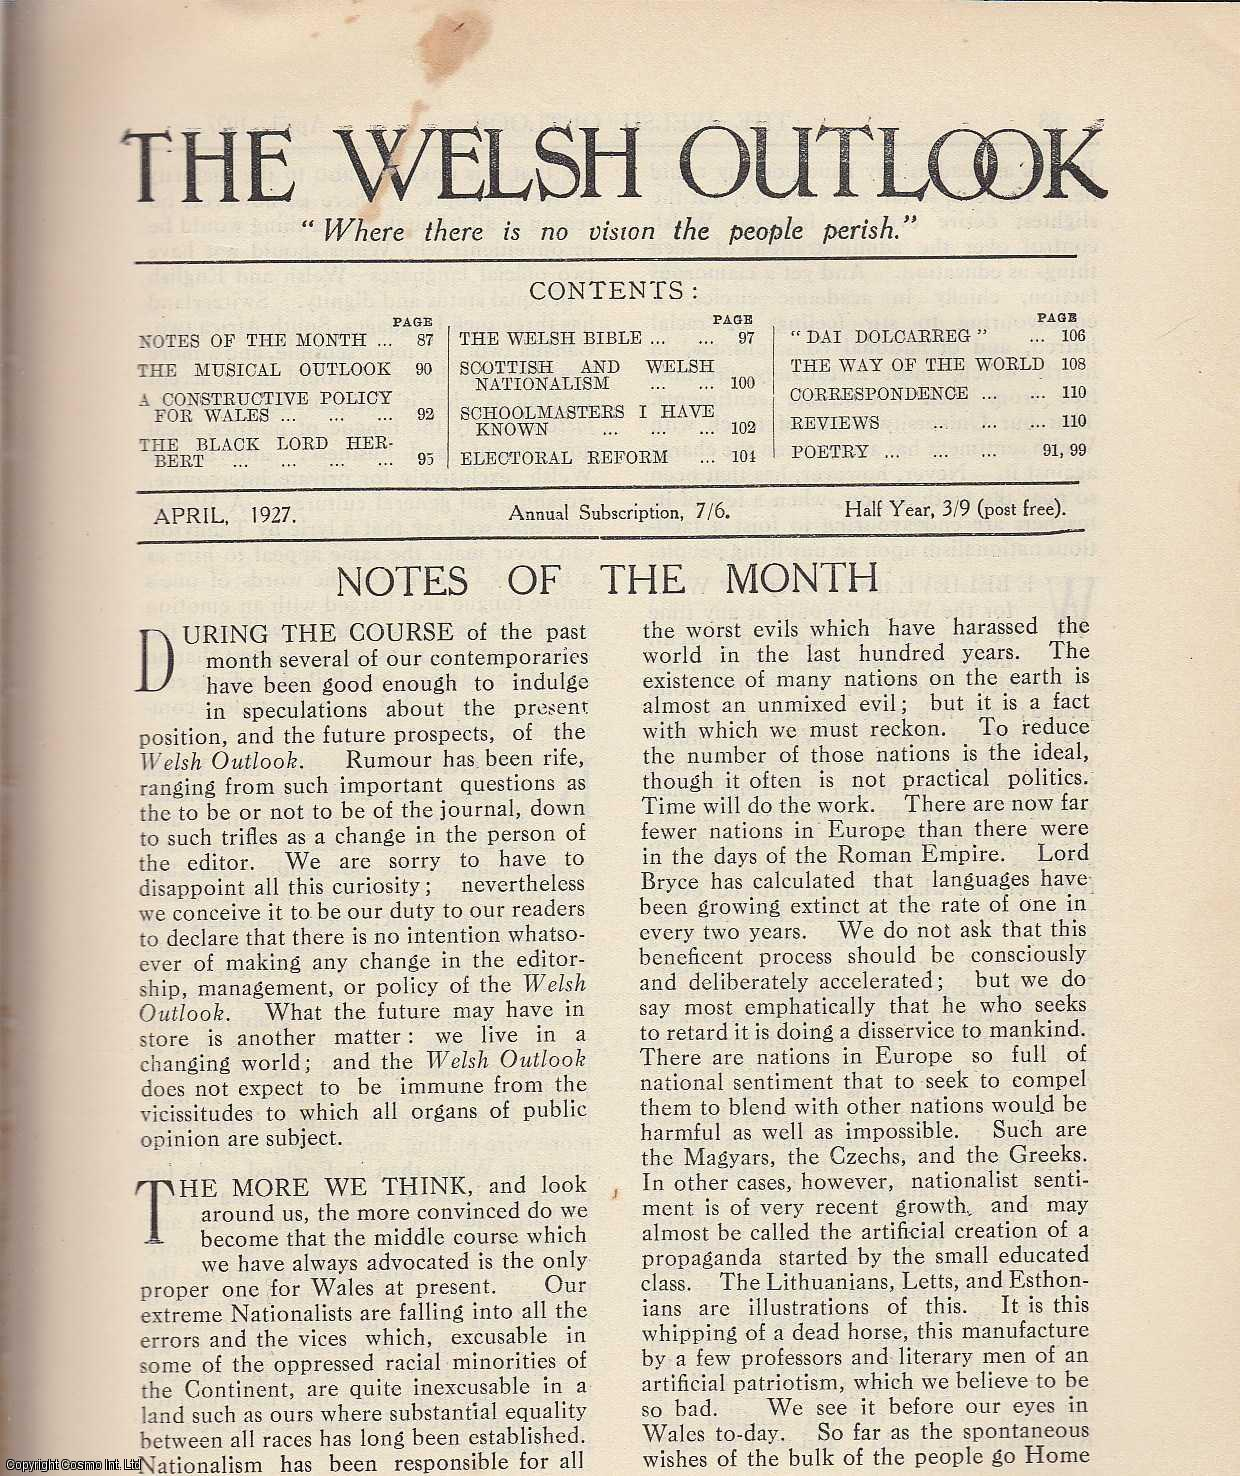 The Welsh Outlook. A Monthly Journal of National Social Progress. April, 1927. Contains; The Musical Outlook by Sir Walford Davies; A Constructive Policy for Wales by T.P. Ellis; The Black Lord Herbert and his book of Autobiography by J. Kyrle Fletcher; The Welsh Bible: Its Influence on The National Character by D. Delta Evans; Scottish and Welsh Nationalism: Its Revival, Significance, and Historical Associations by T.R. Evans; Schoolmasters I have Known: Mr. William Griffith Howell, Rhondda by Defynnog; Electoral Reform by D. Rees Williams; Dai Dolcarreg by Gwyneth M. Mills; The Way of The World: An International Diary by Rev. Gwilym Davies., Thomas Jones (Editor)